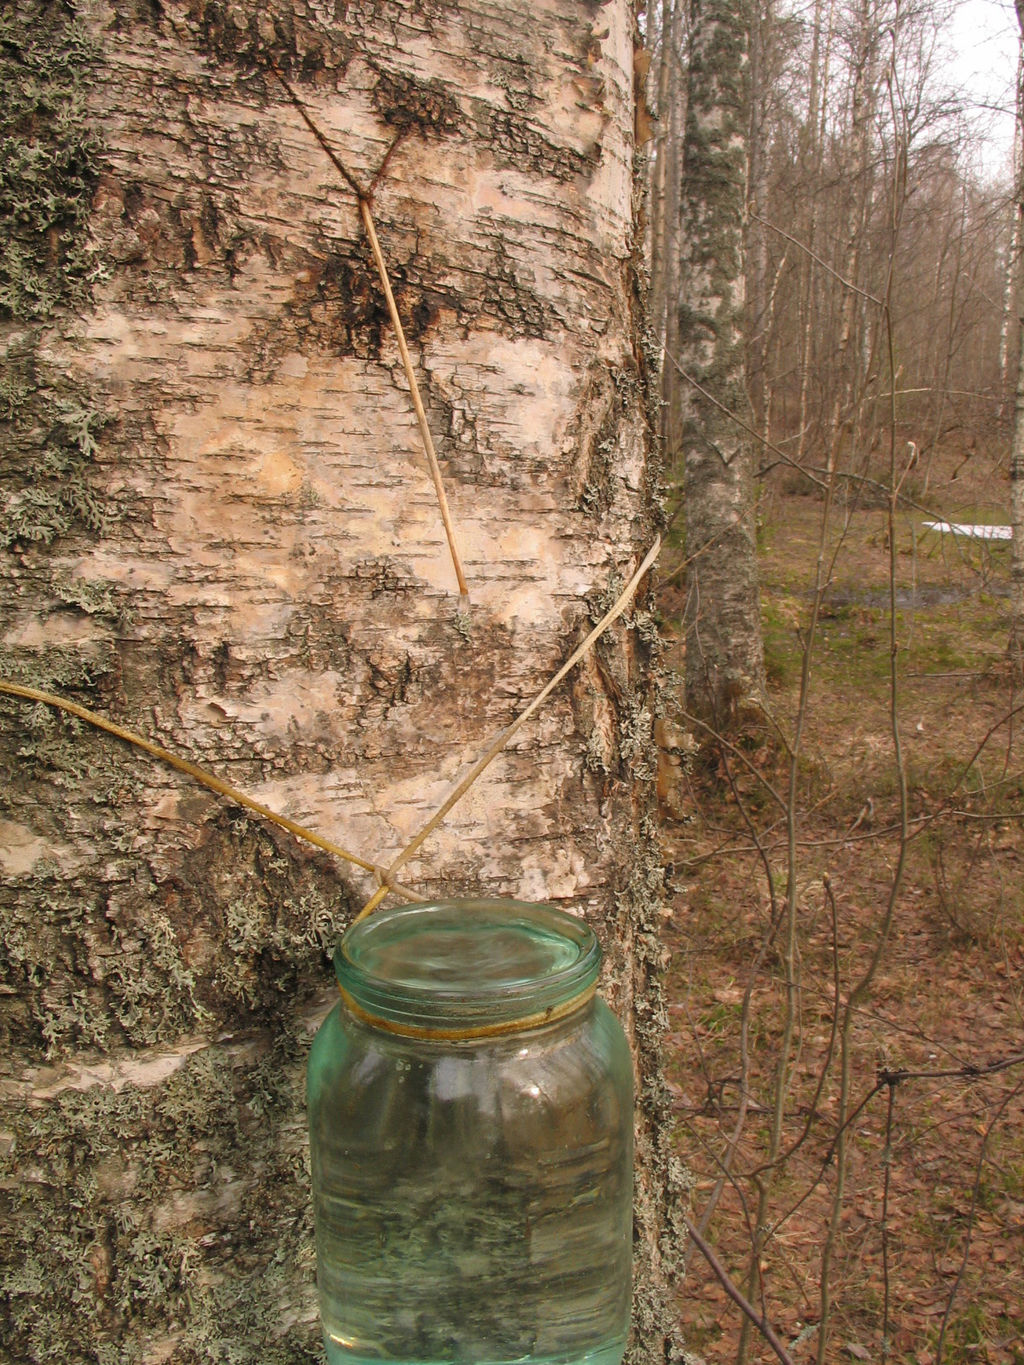 Collecting of birch sap